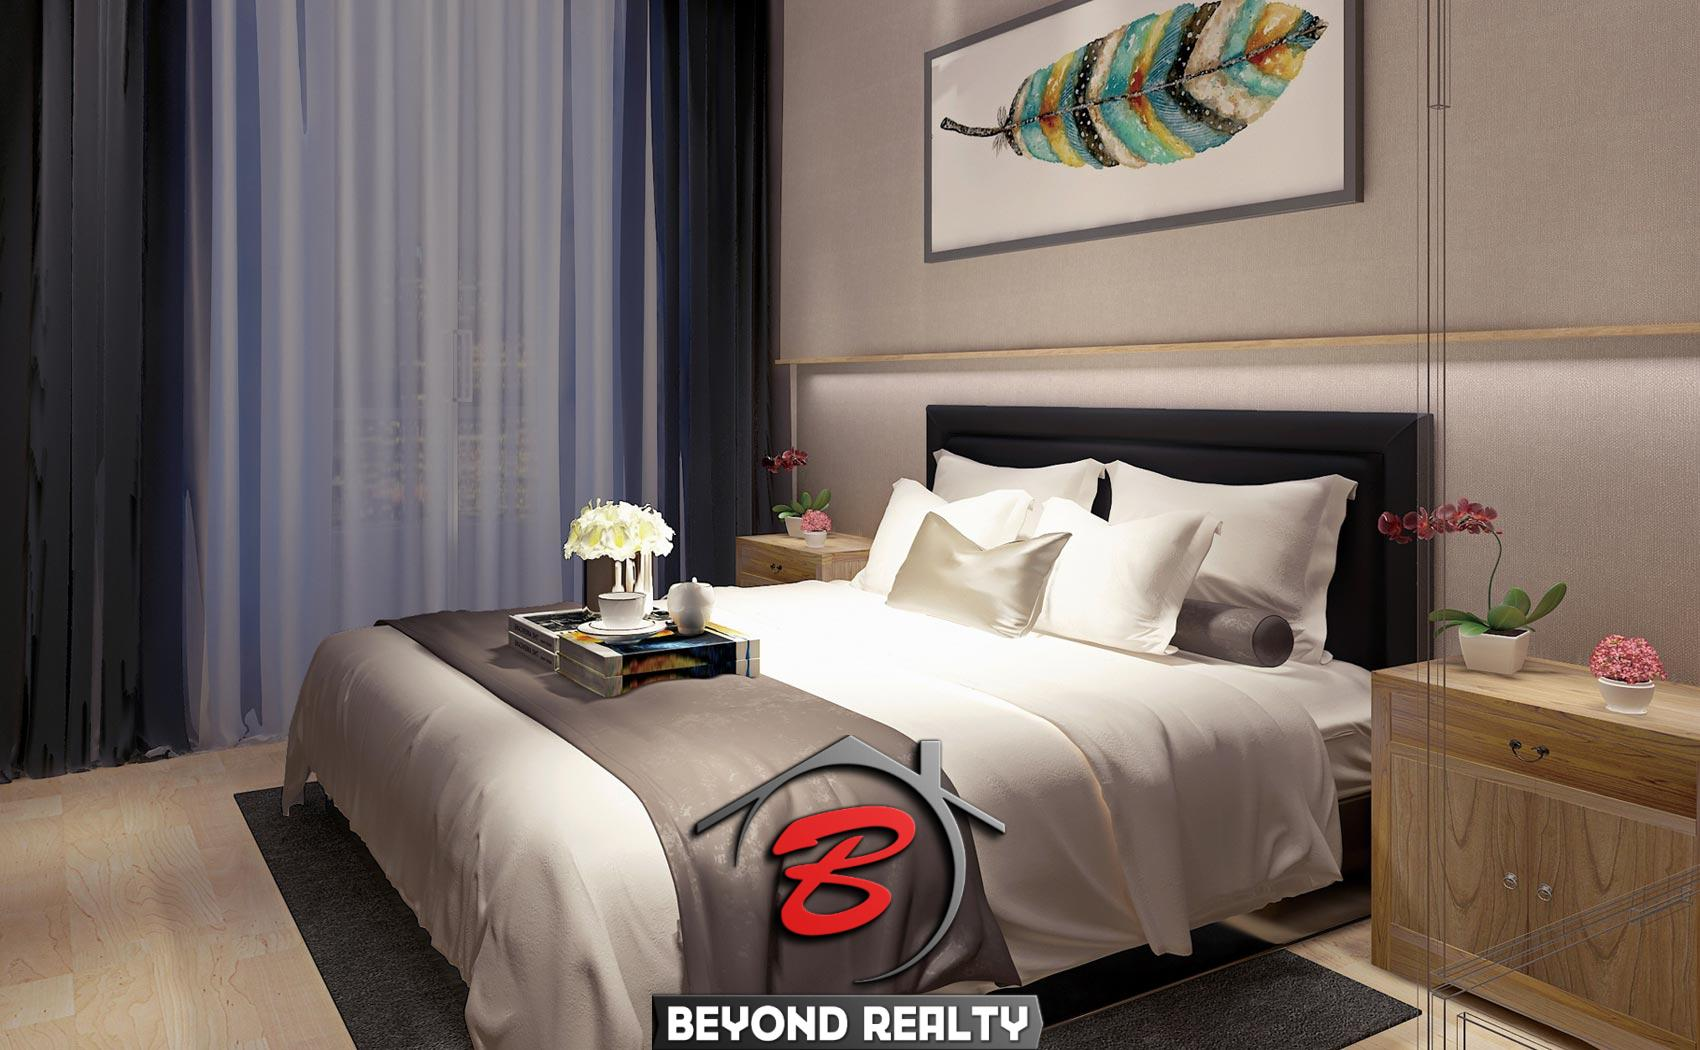 a bedroom of the 1 bedroom condo unit for sale at SeaGate Suite in Sangkat 3 Sihanoukville